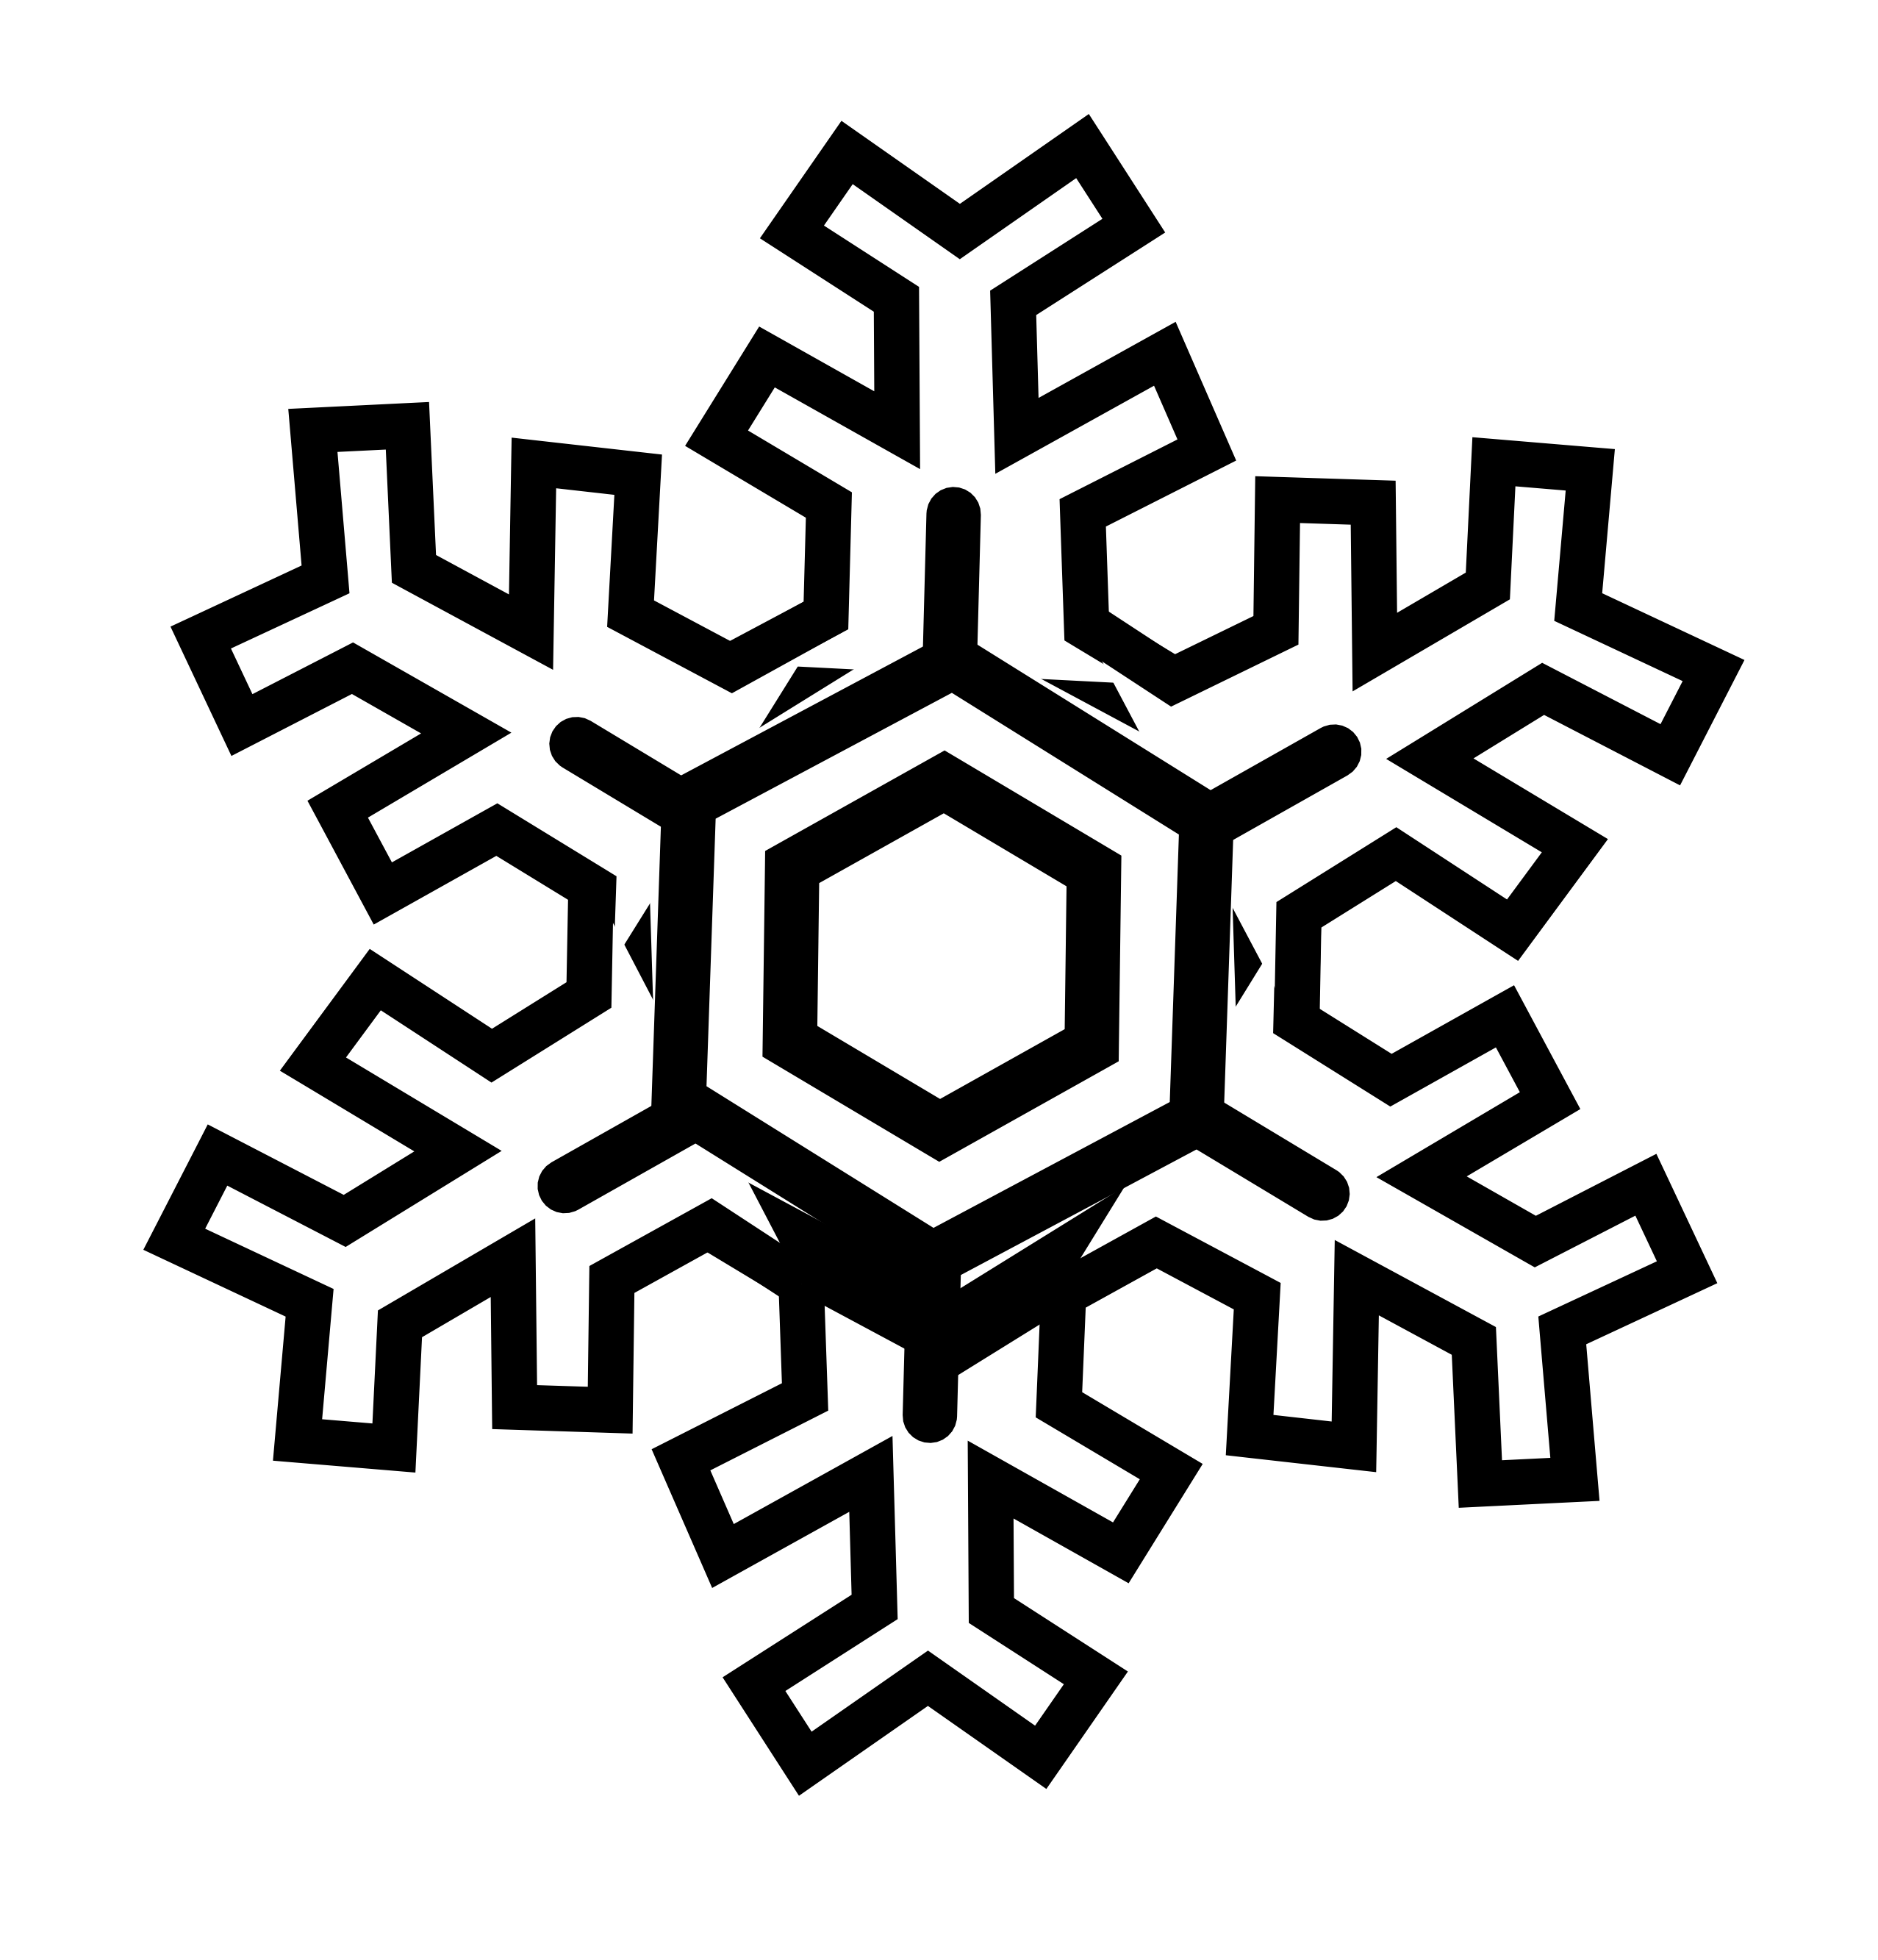 Snowflake leaf black and white clipart clip royalty free Snowflake Clipart Black And White | Clipart Panda - Free Clipart Images clip royalty free